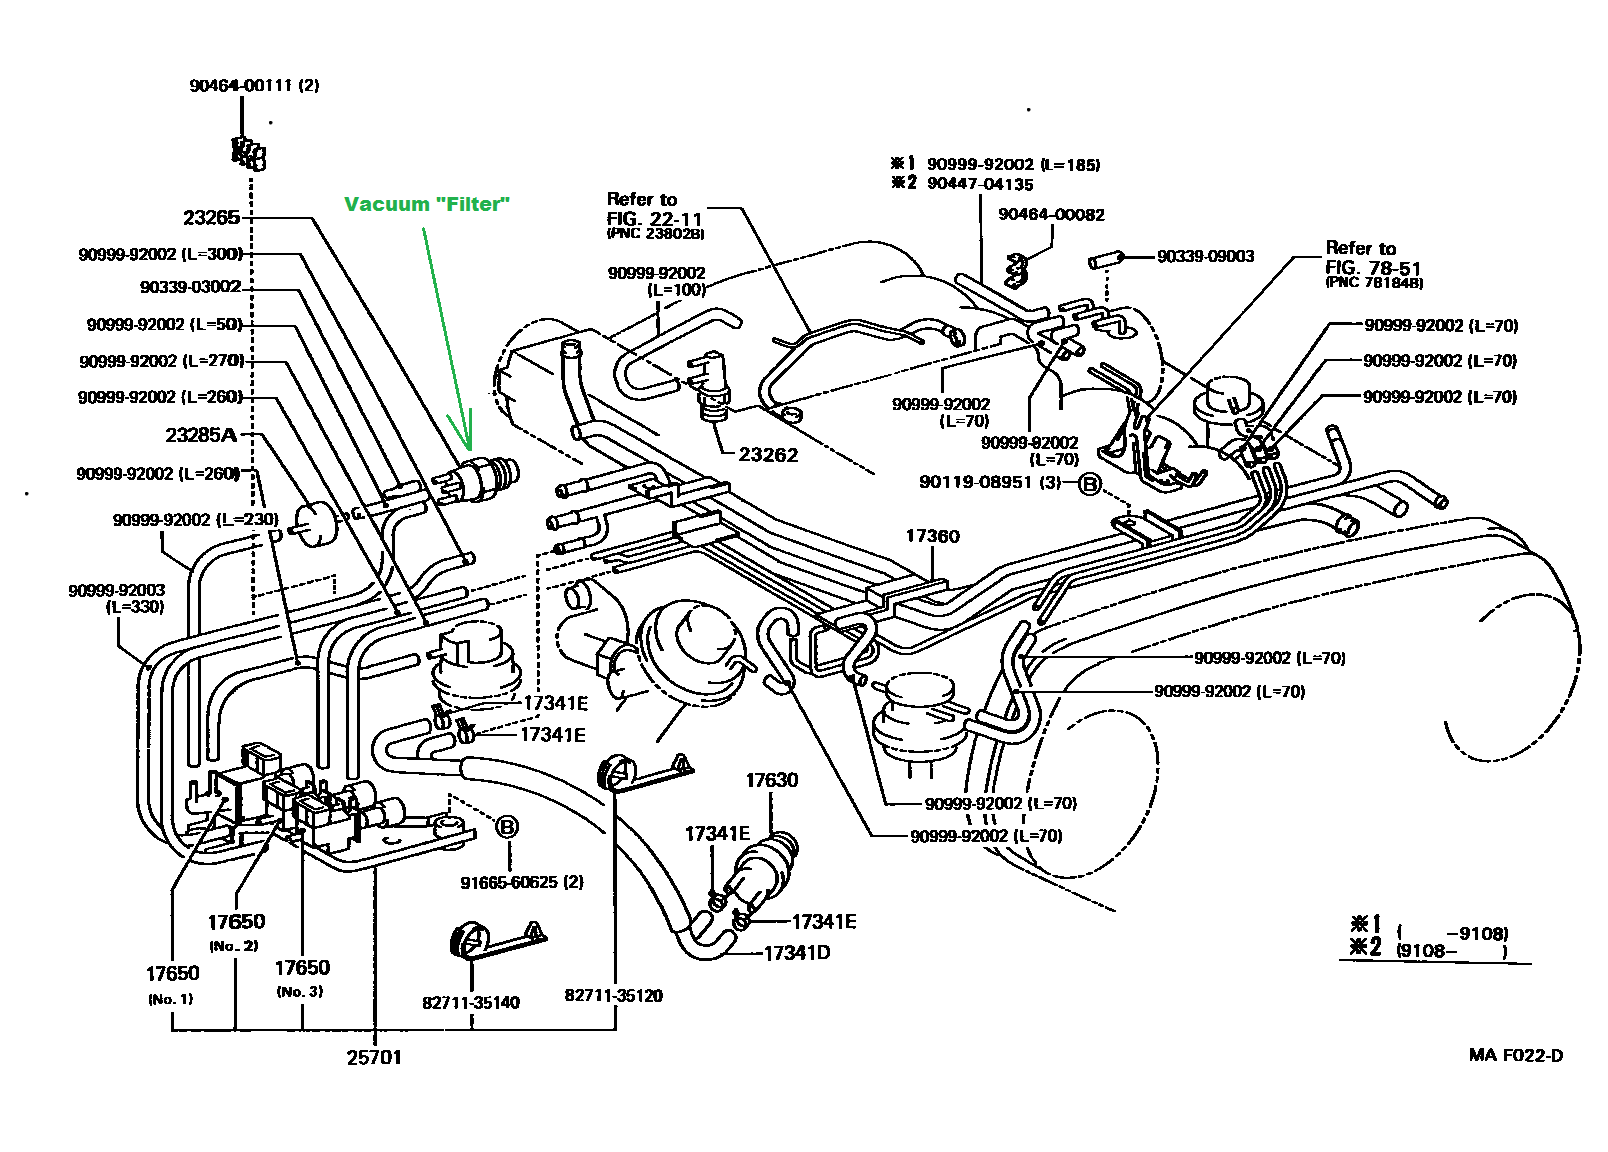 hight resolution of 1994 toyota 3 0 v6 engine diagrams automotive wiring diagrams 1994 nissan quest 3 0 engine diagram nissan v6 3 0 engine diagram